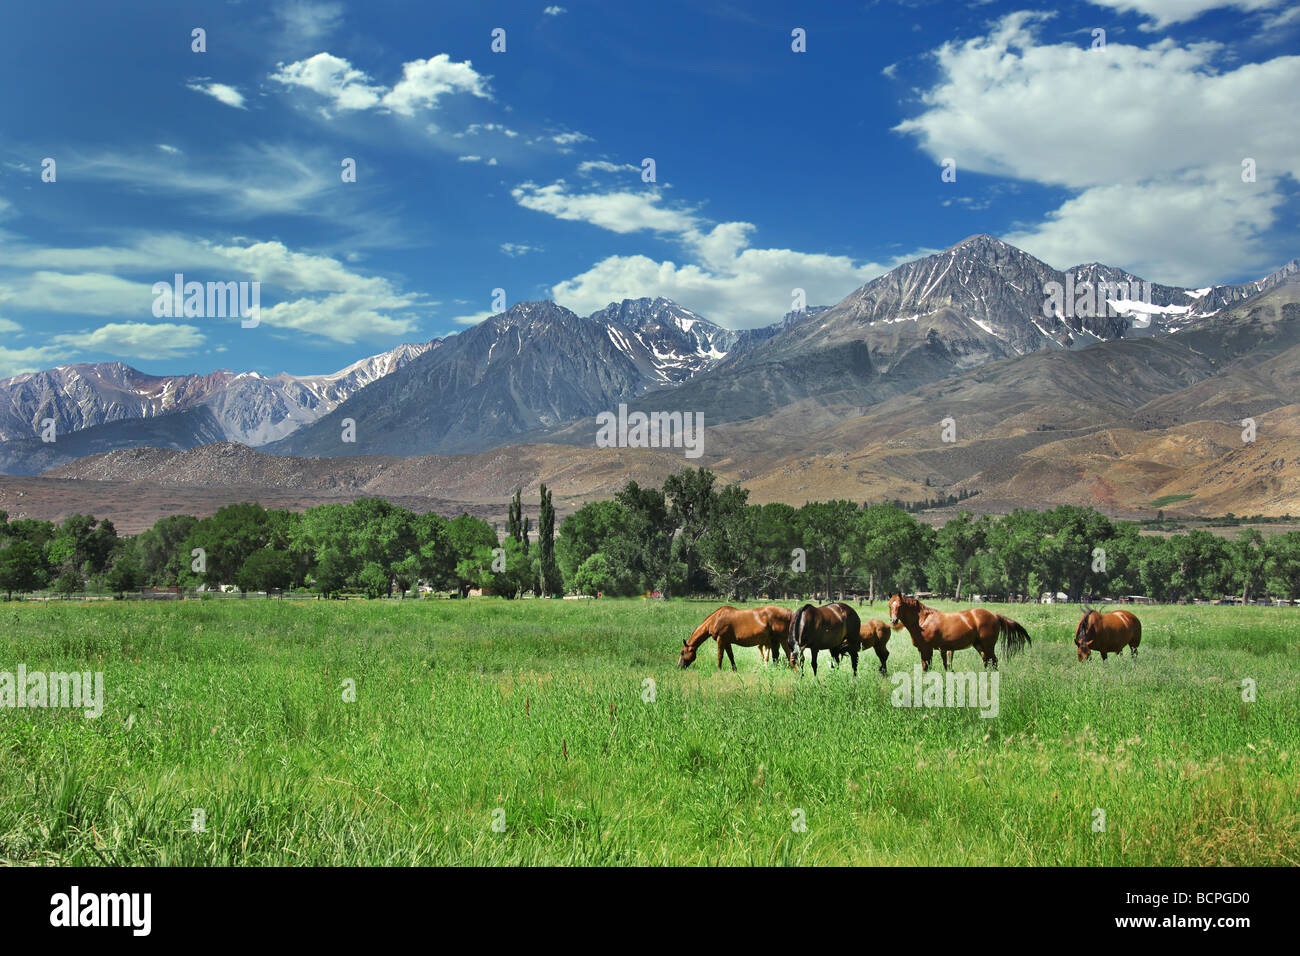 Horses Living in the Eastern Sierra Nevada Mountains - Stock Image